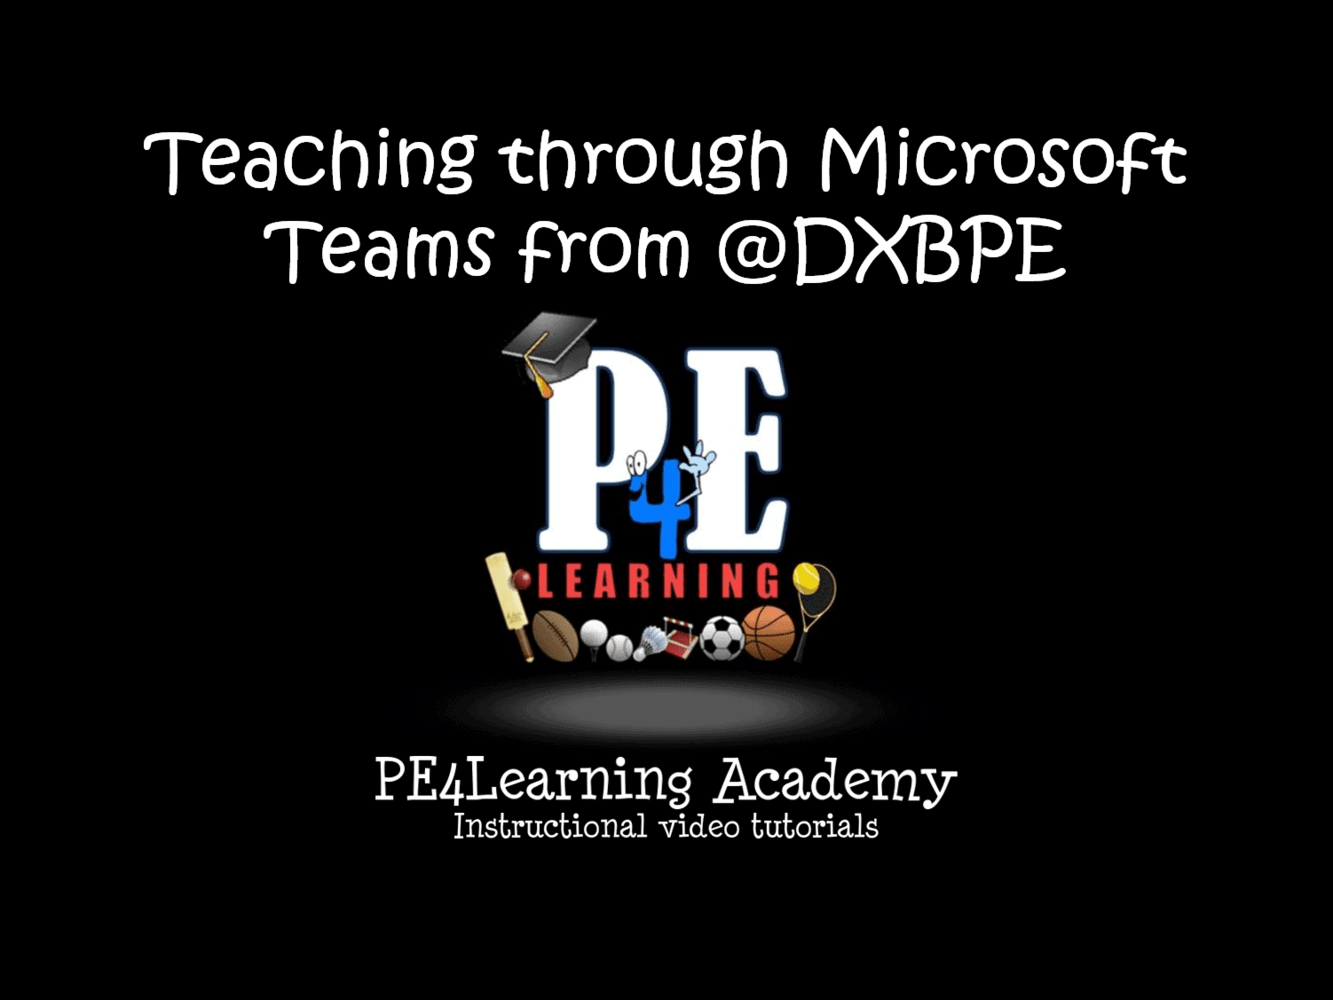 Teaching through Microsoft Teams from @DXBPE